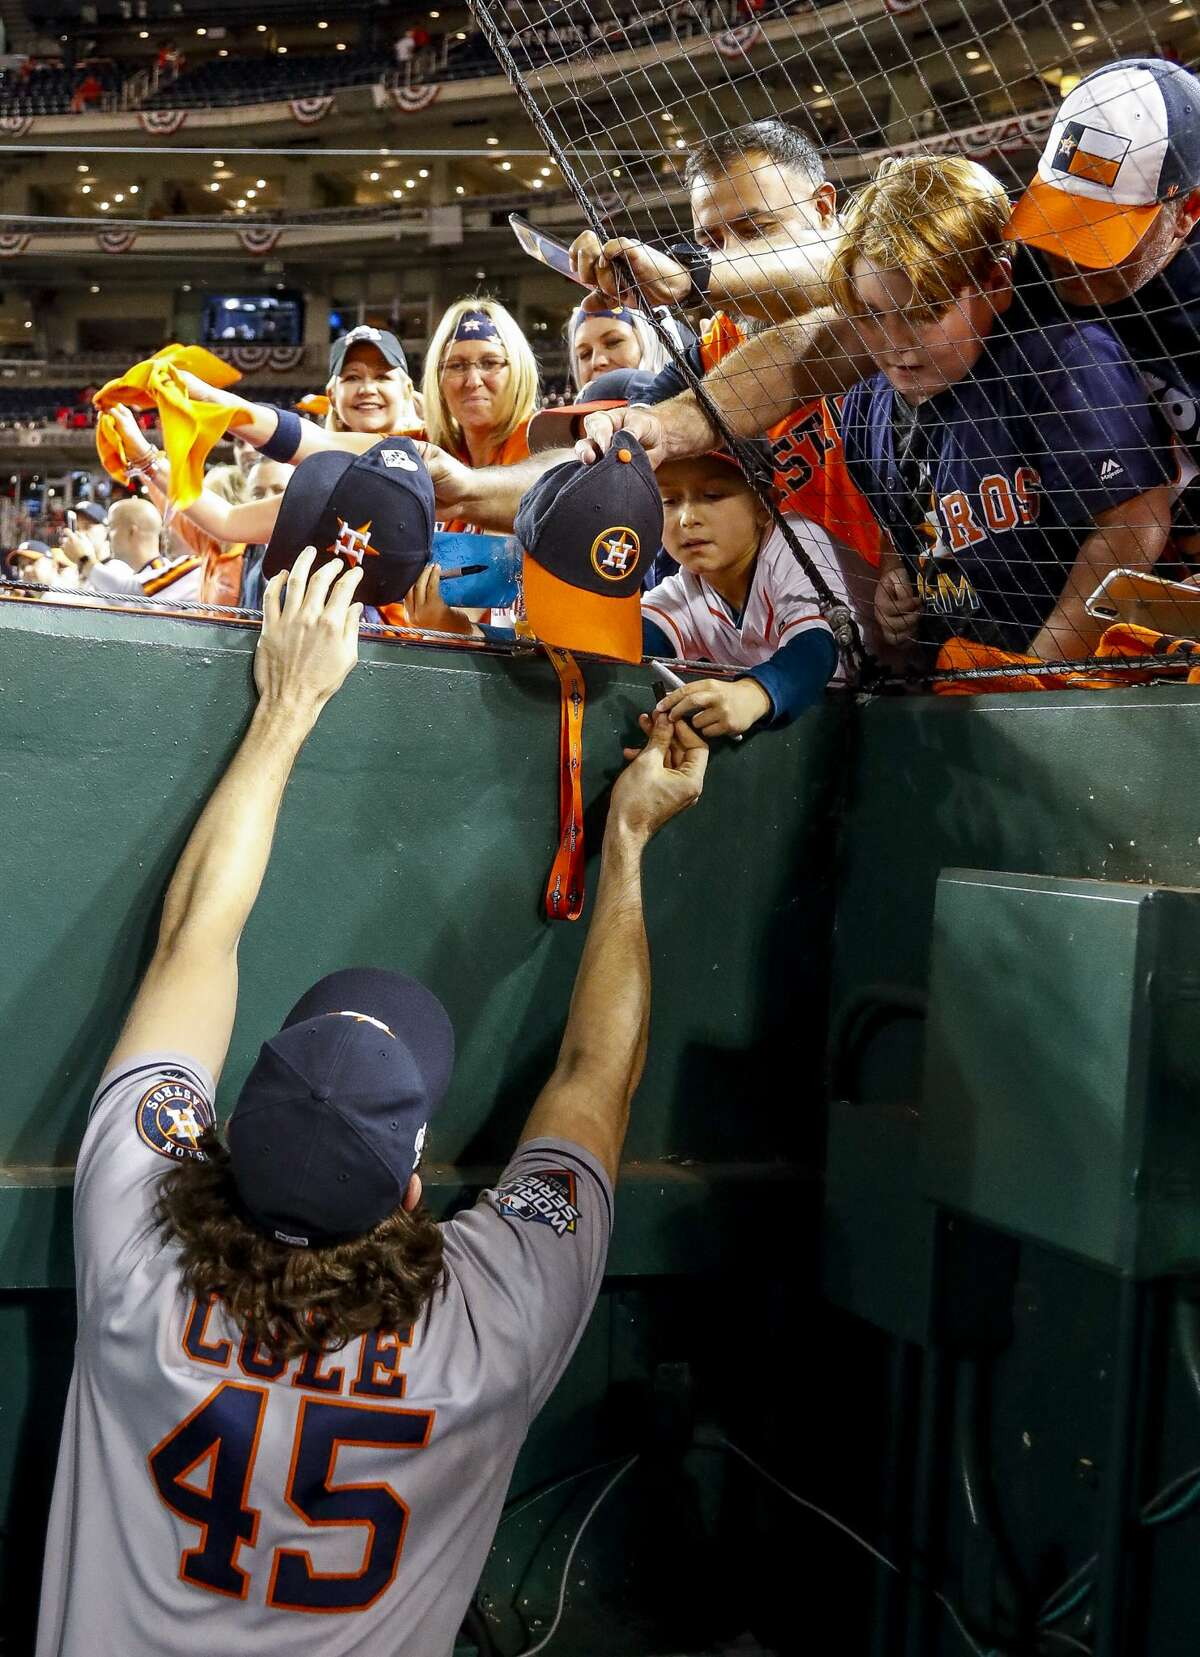 Houston Astros starting pitcher Gerrit Cole (45) signs autographs for fans after the Astros won Game 5 of the World Series 7-1 at Nationals Park in Washington, D.C. on Sunday, Oct. 27, 2019.